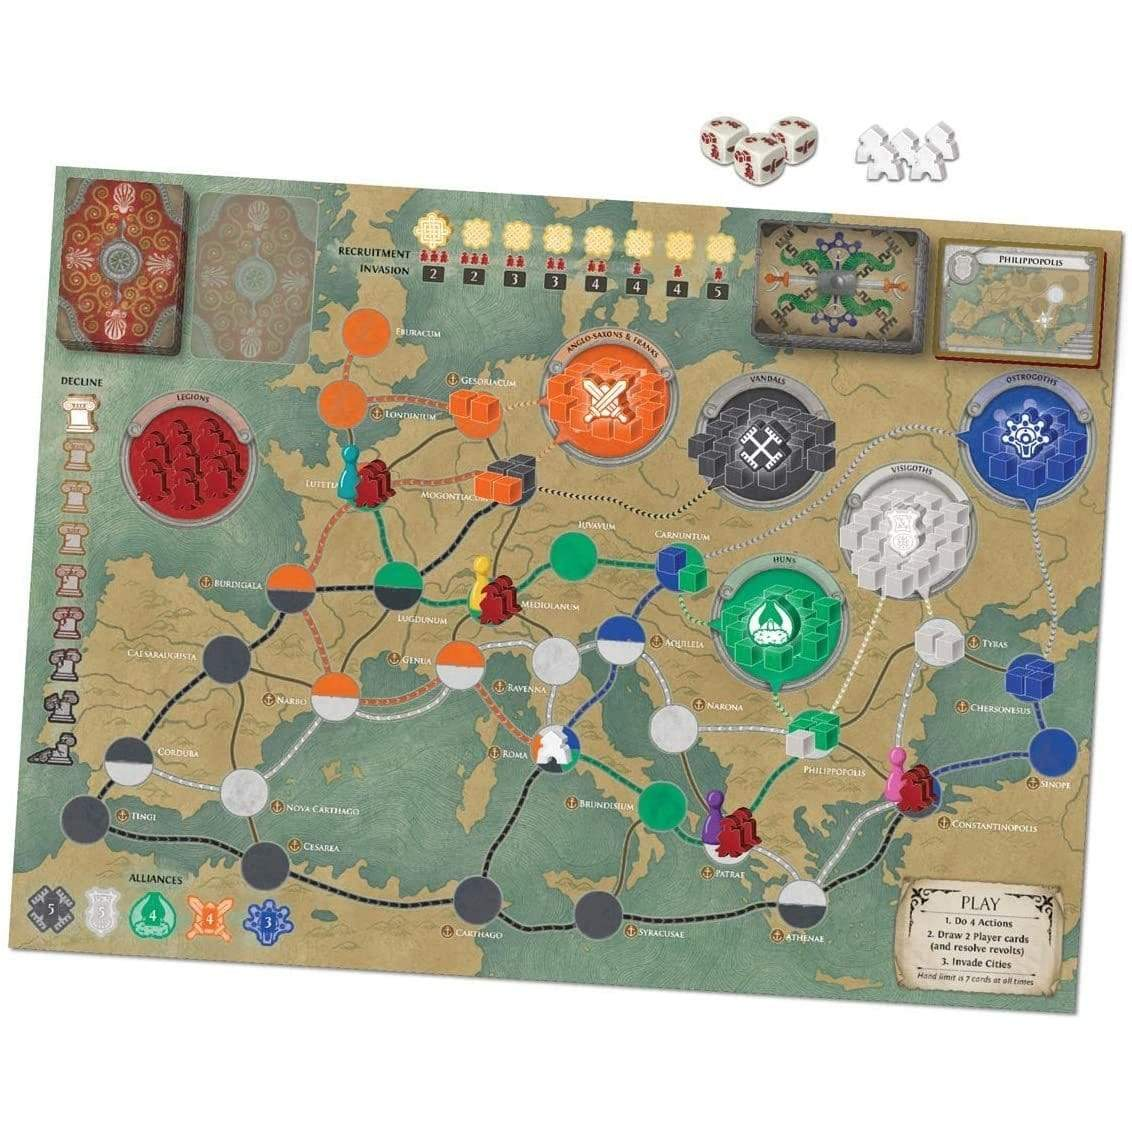 Pandemic: Fall of Rome Alliance Games Board Games